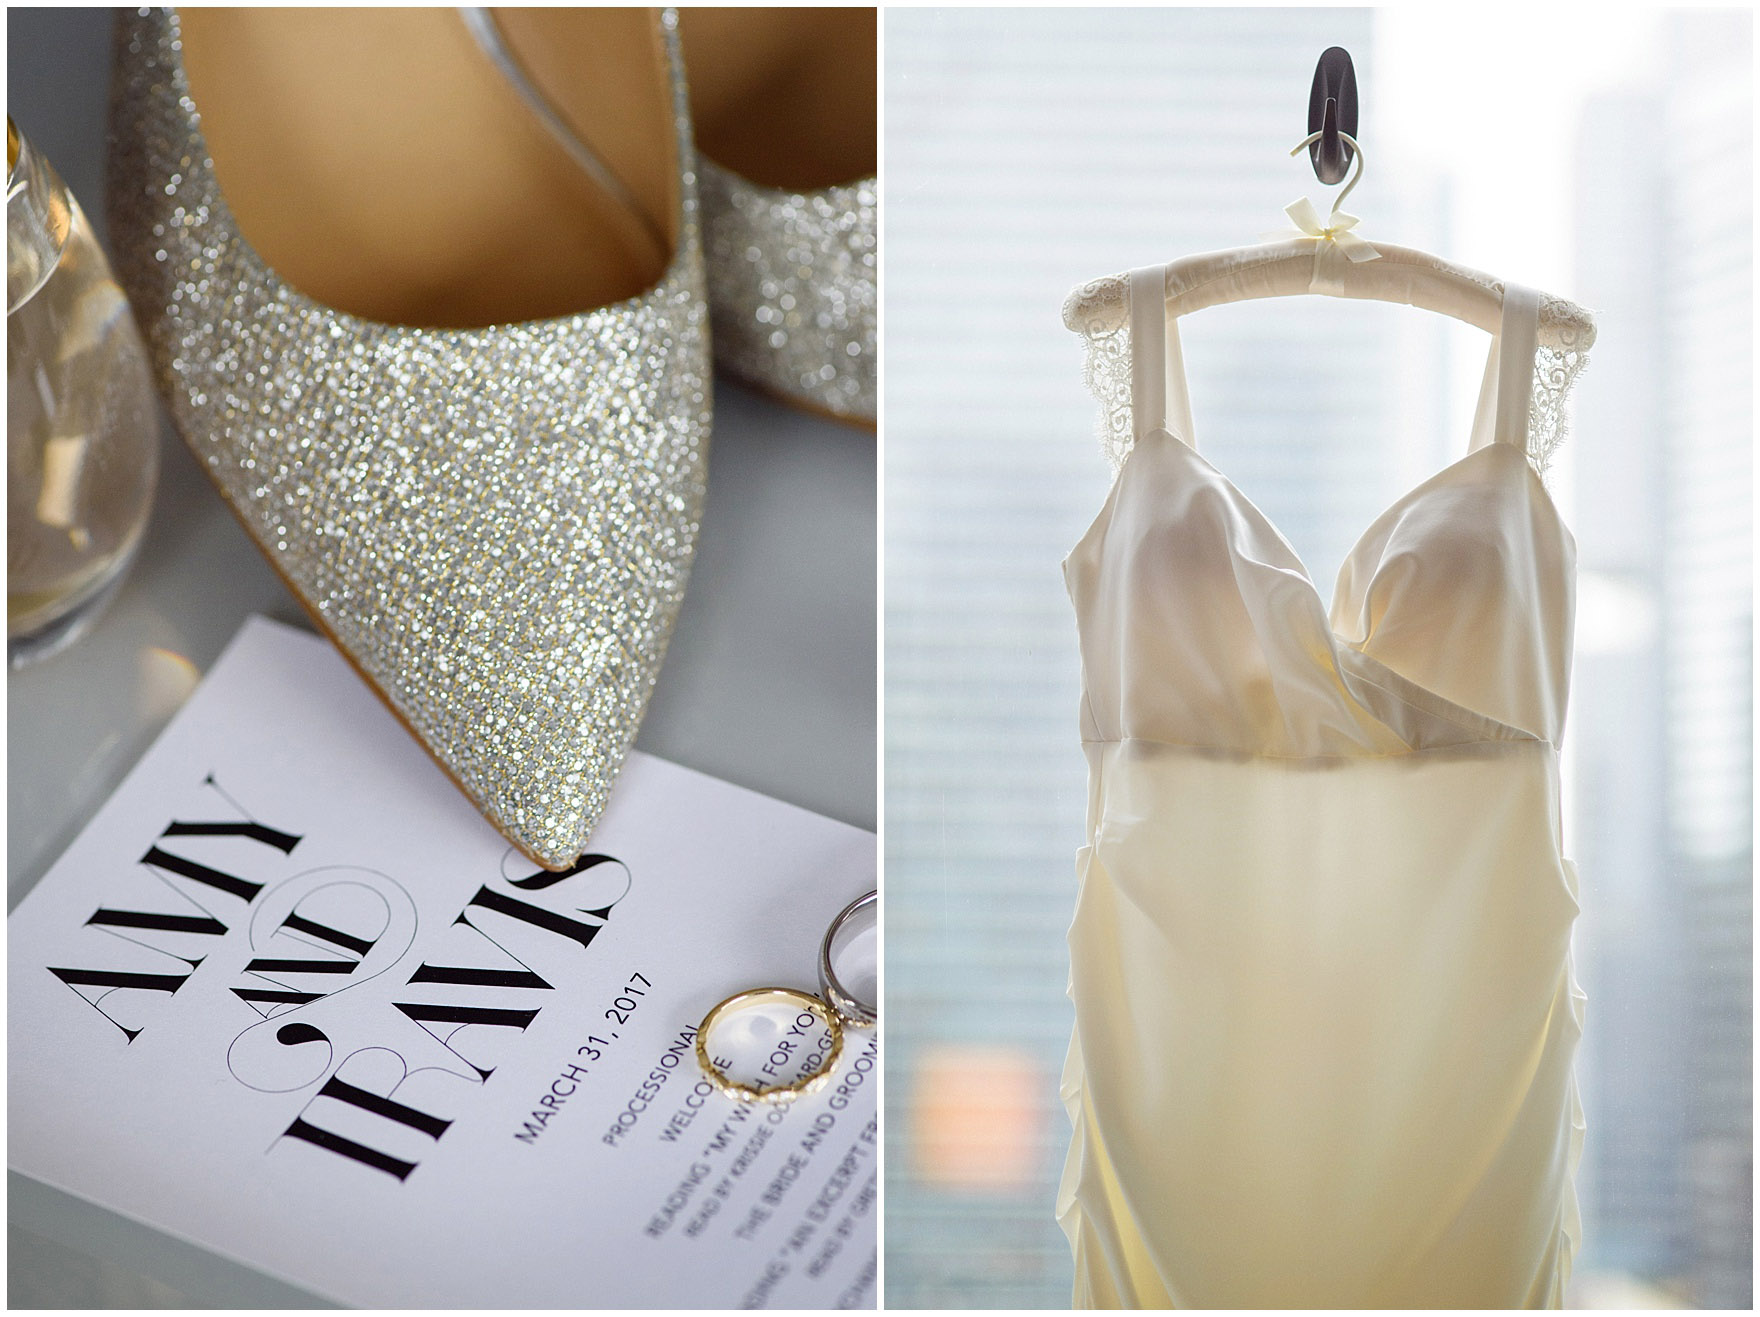 Details of an invitation, shoes, rings and wedding dress for an Ovation Chicago wedding.